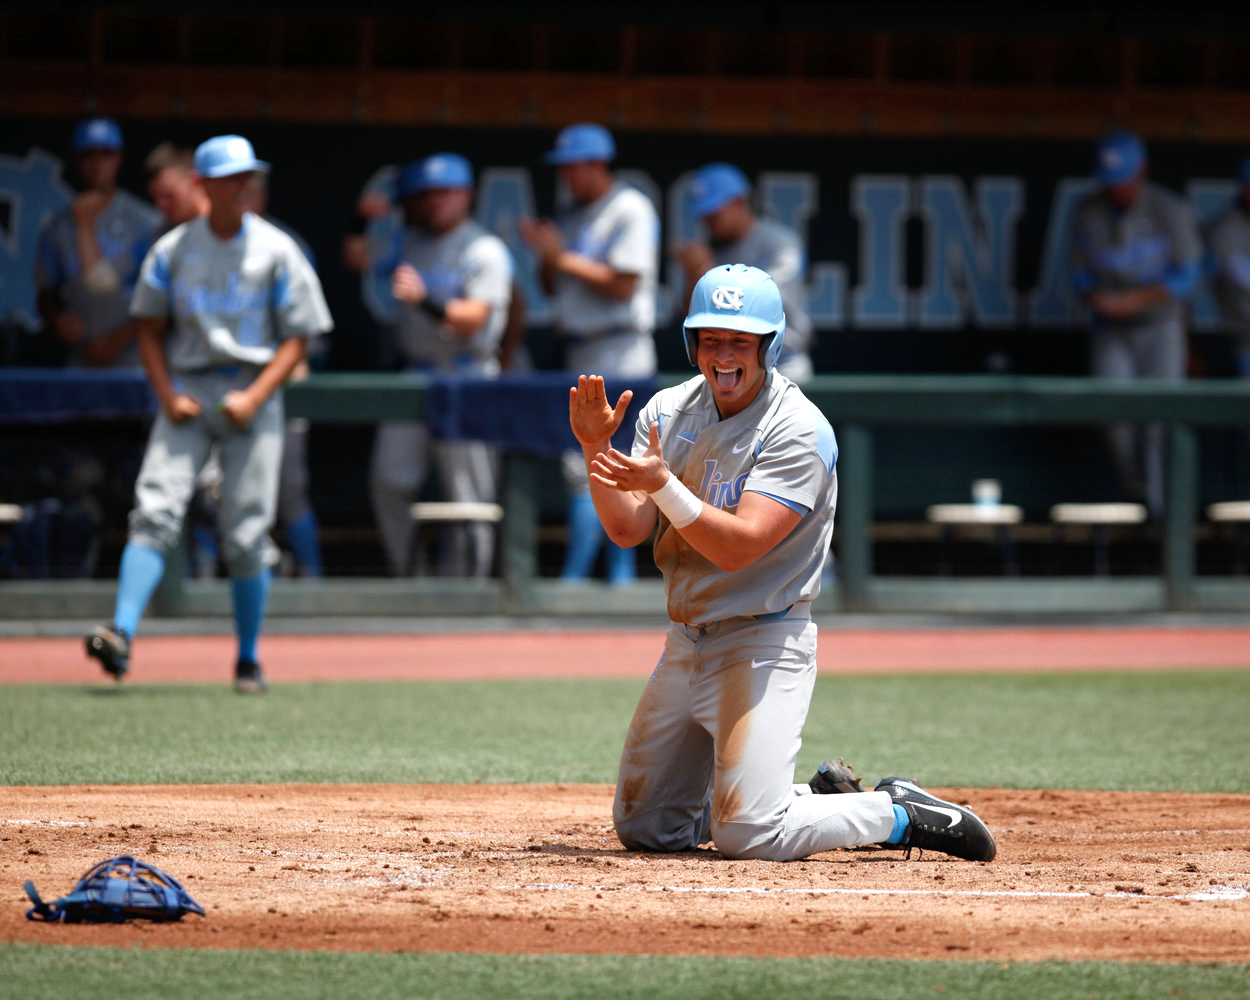 North Carolina freshman Michael Busch celebrates after sliding into home to score during the 2017 NCAA Super Regionals.